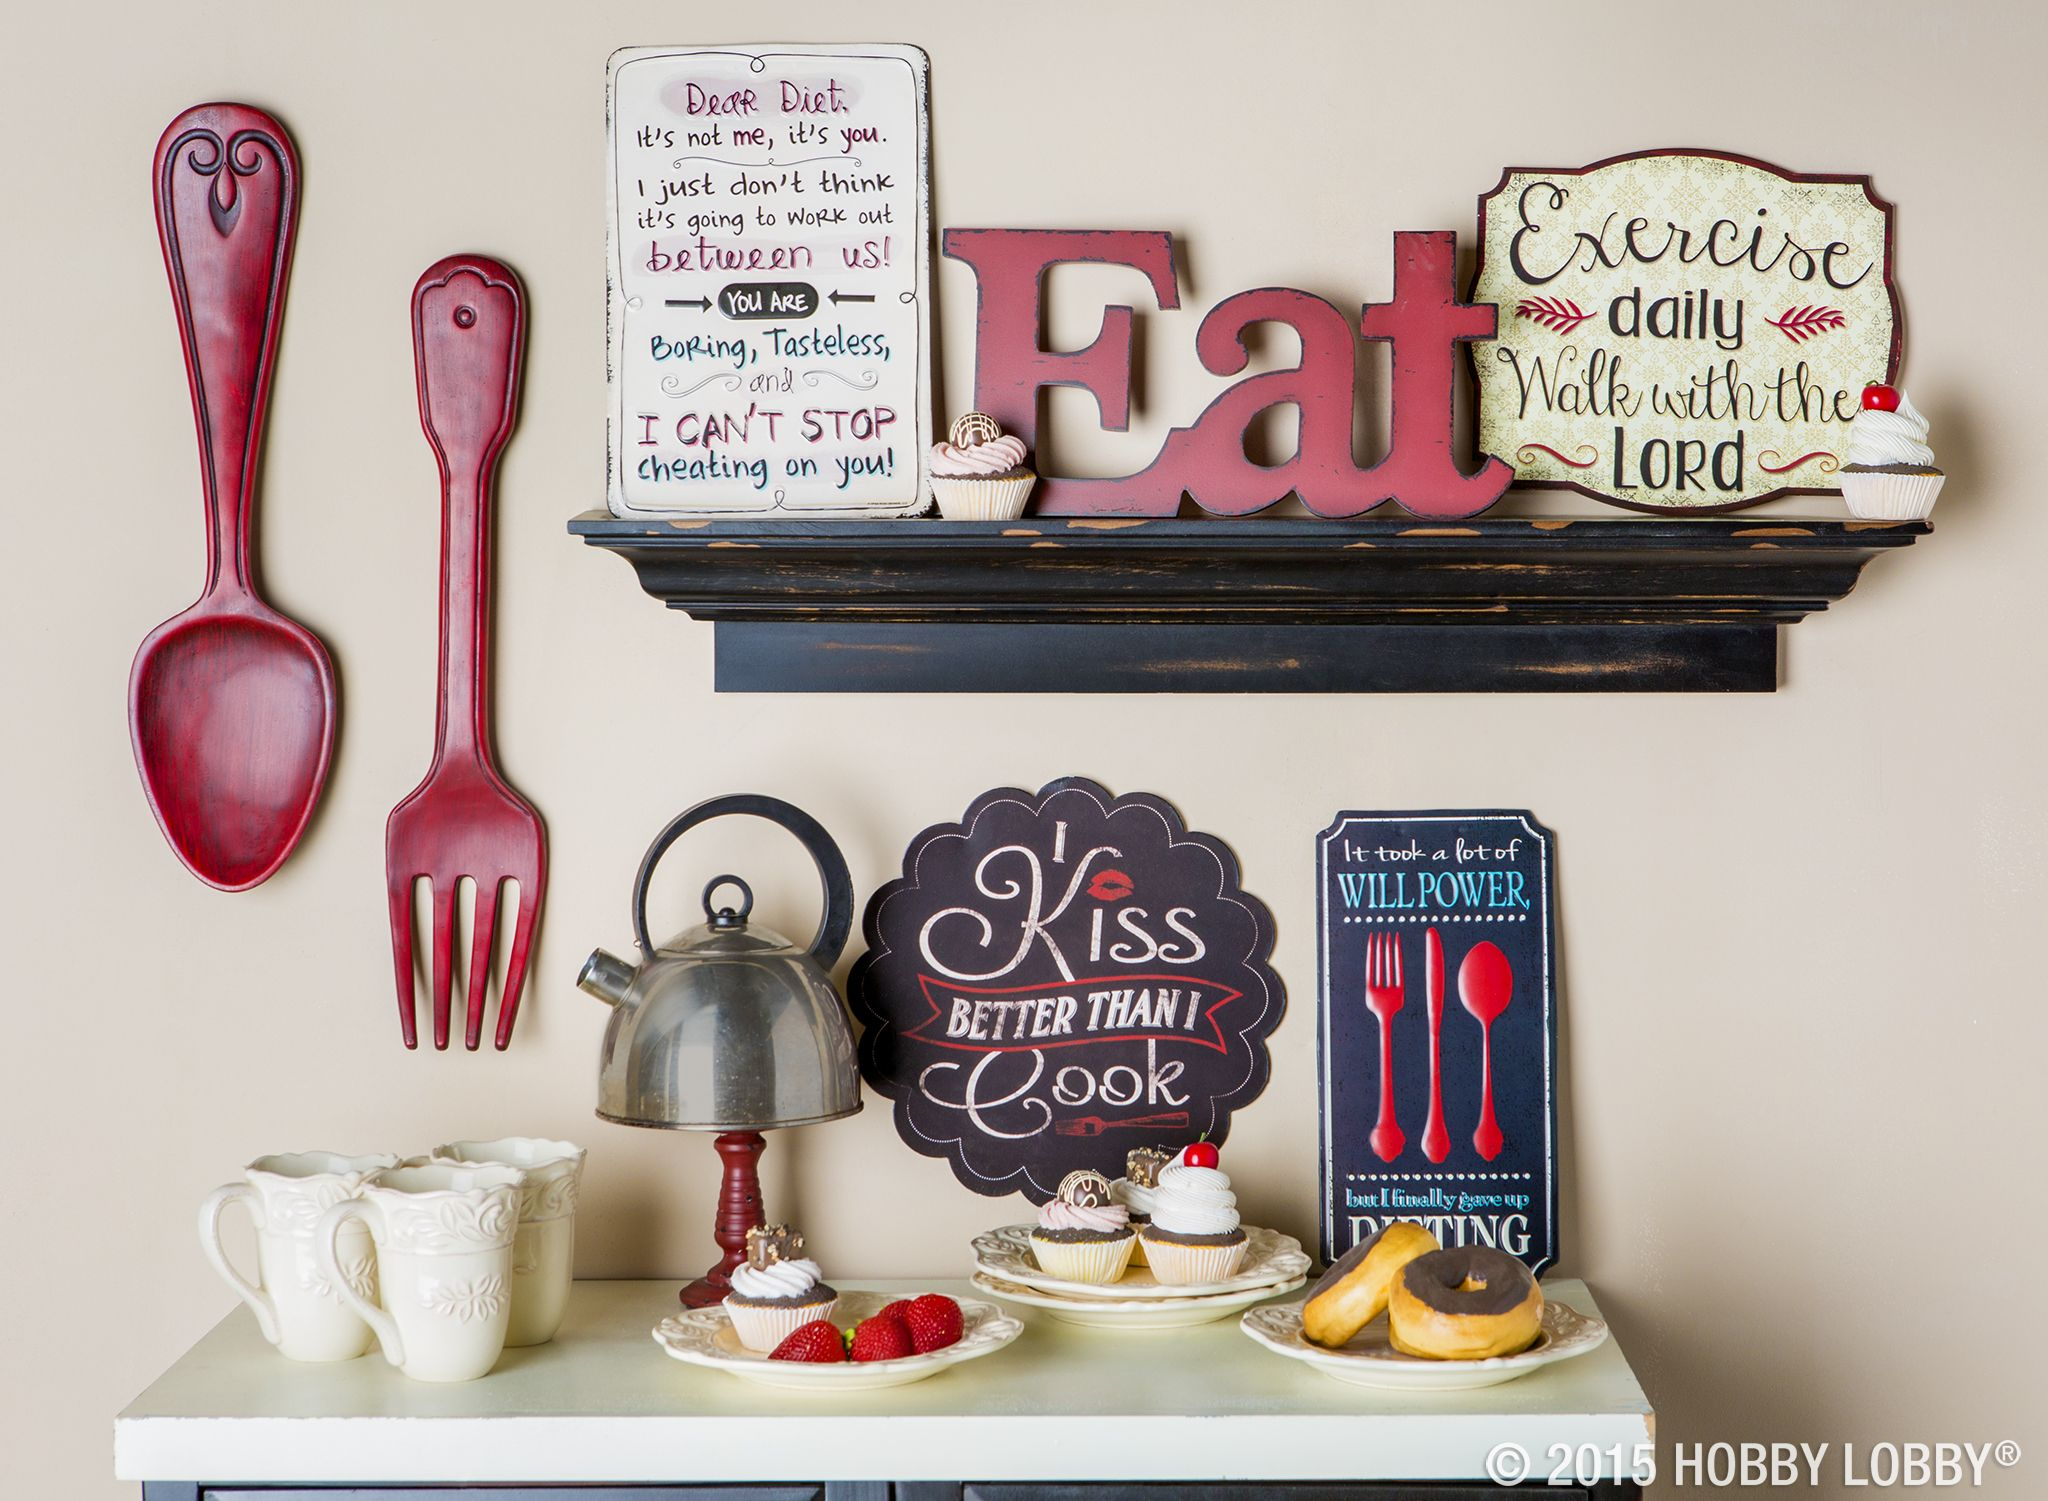 Red kitchen decor never goes out of style cially with a good